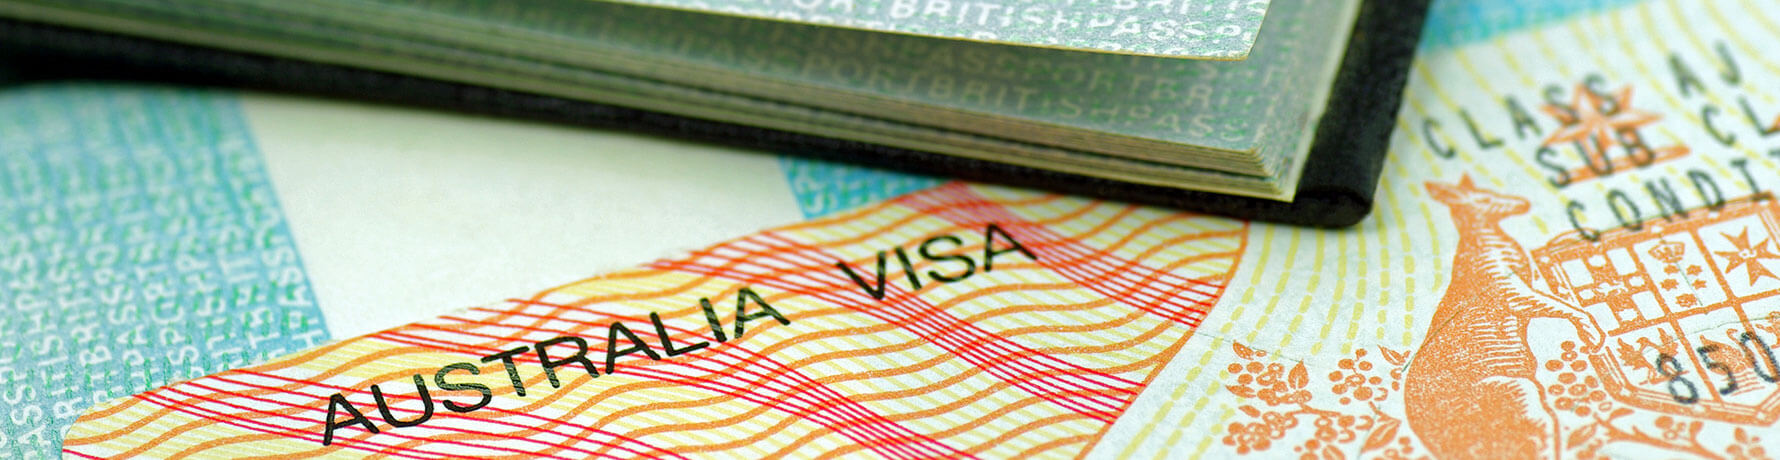 How to get your working holiday visa in Australia